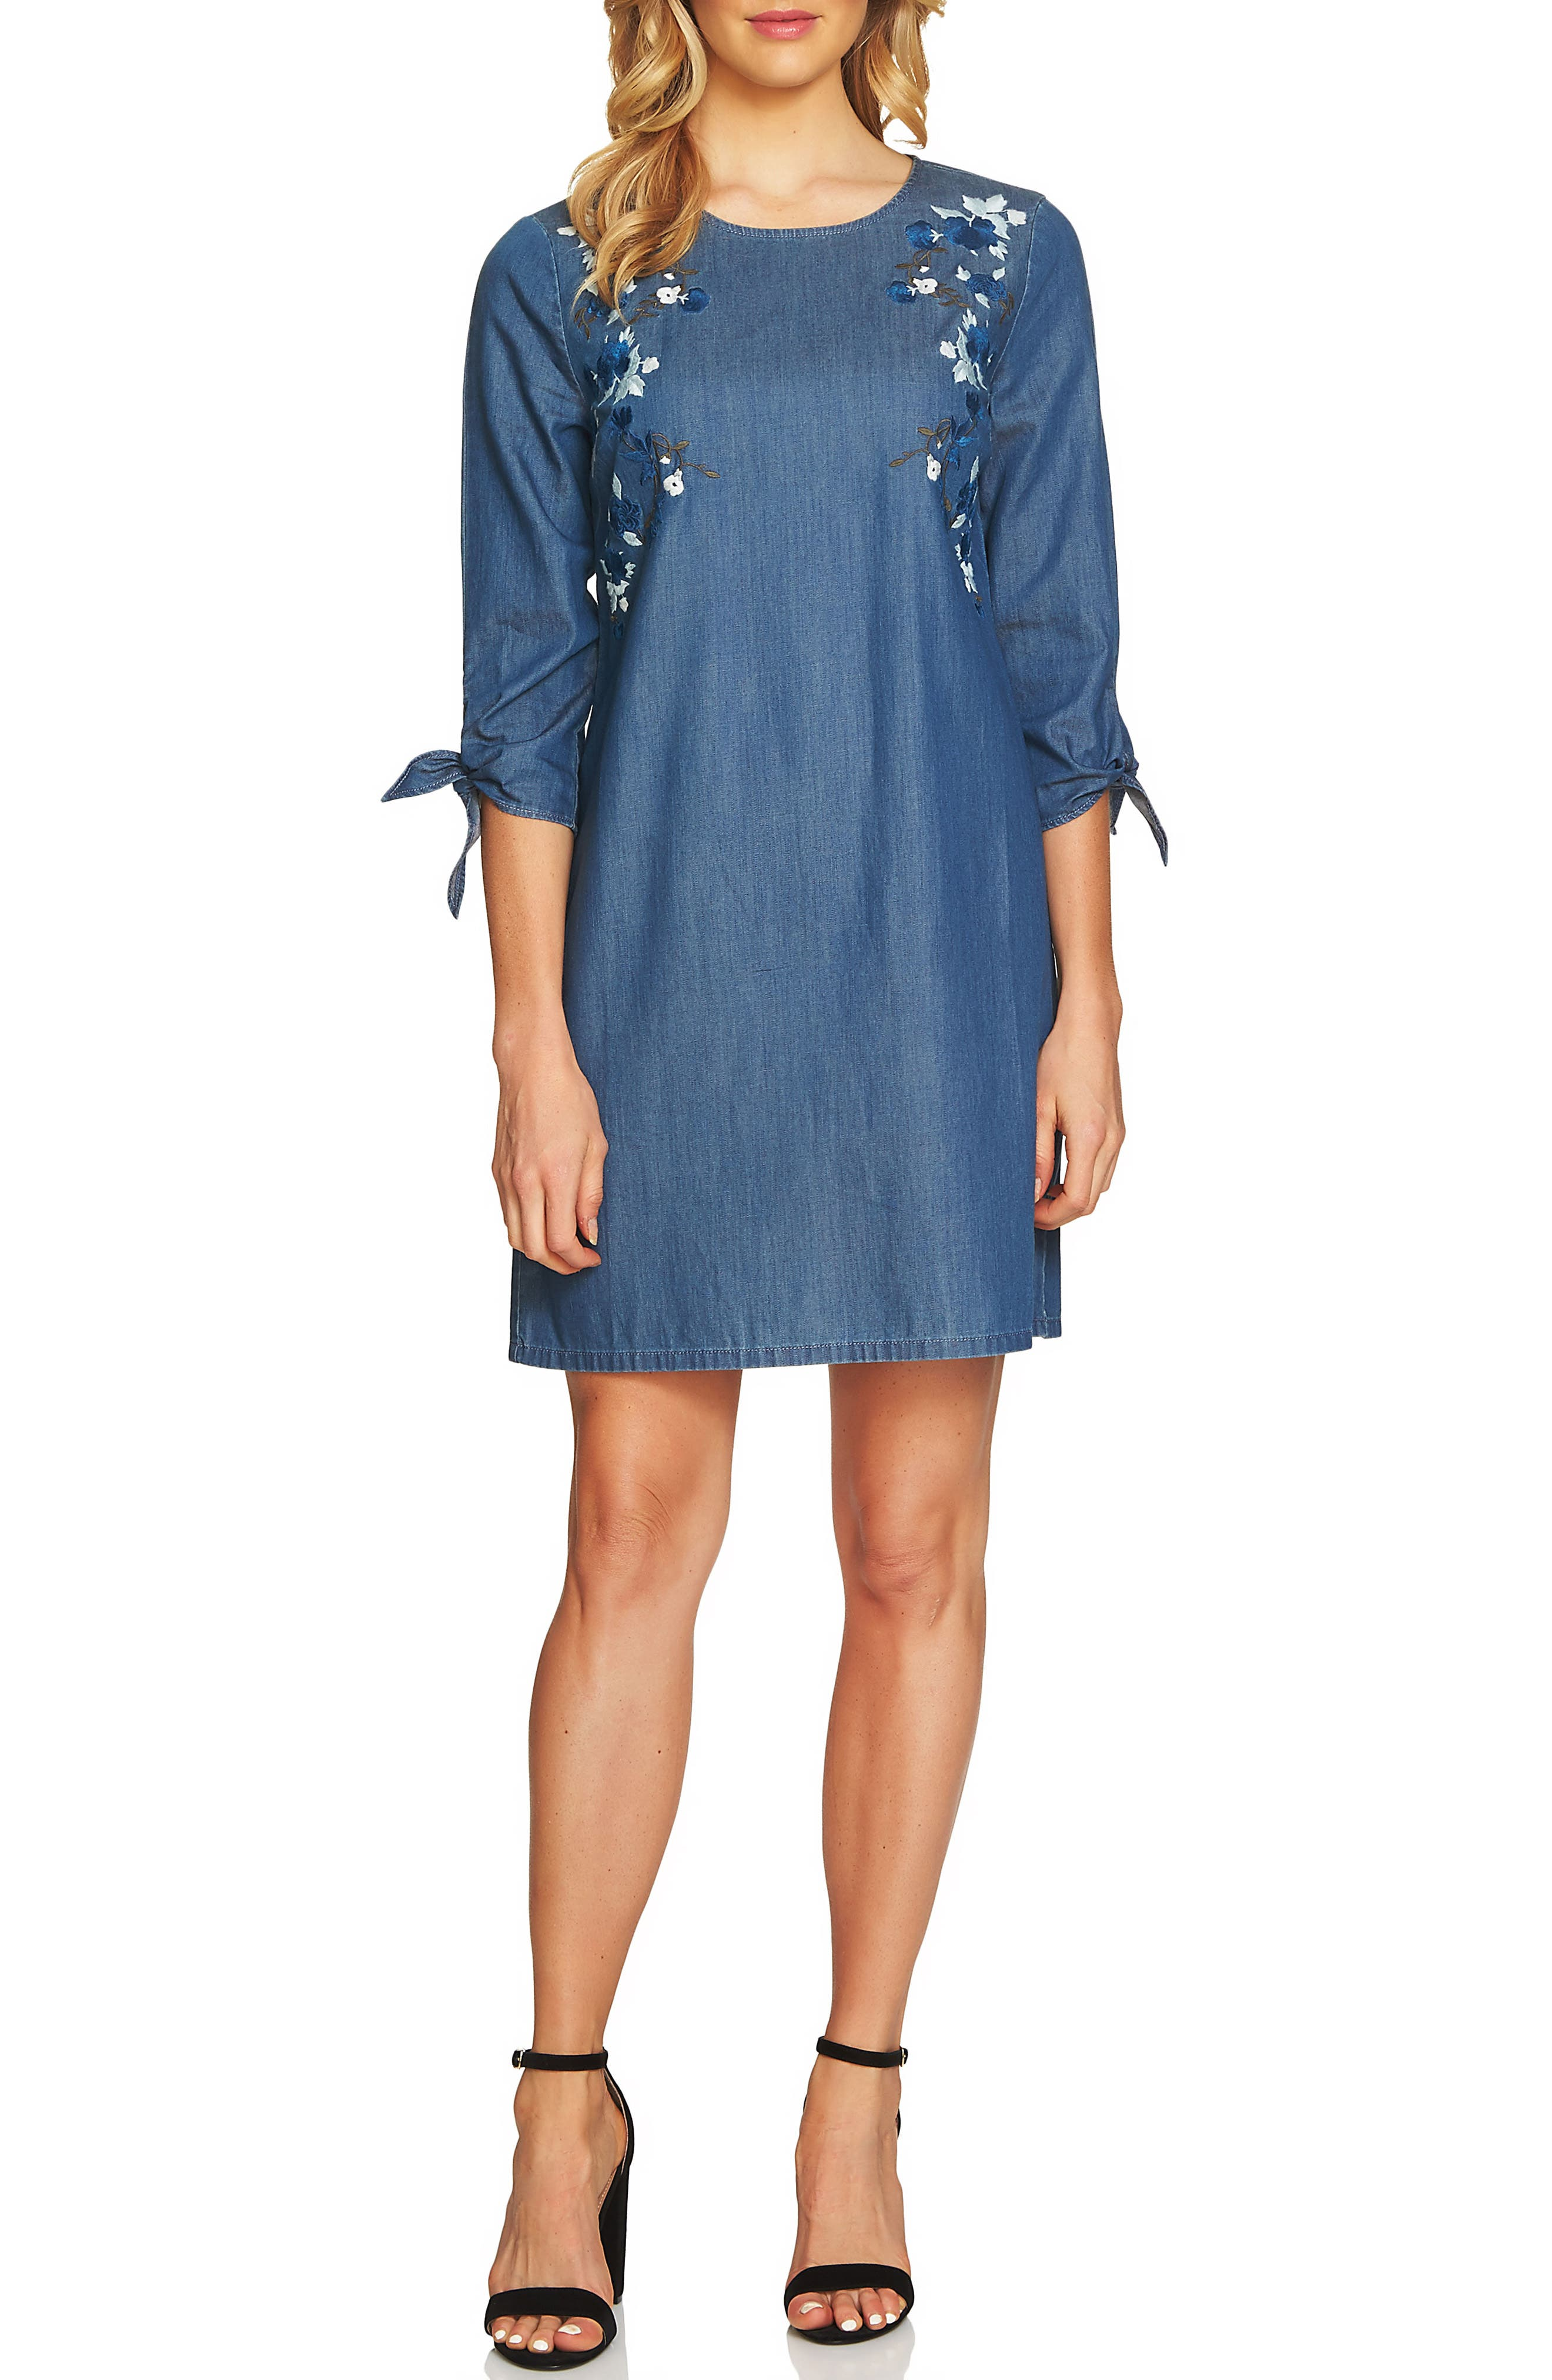 Floral Embroidered Denim Tie Sleeve Dress,                             Main thumbnail 1, color,                             422